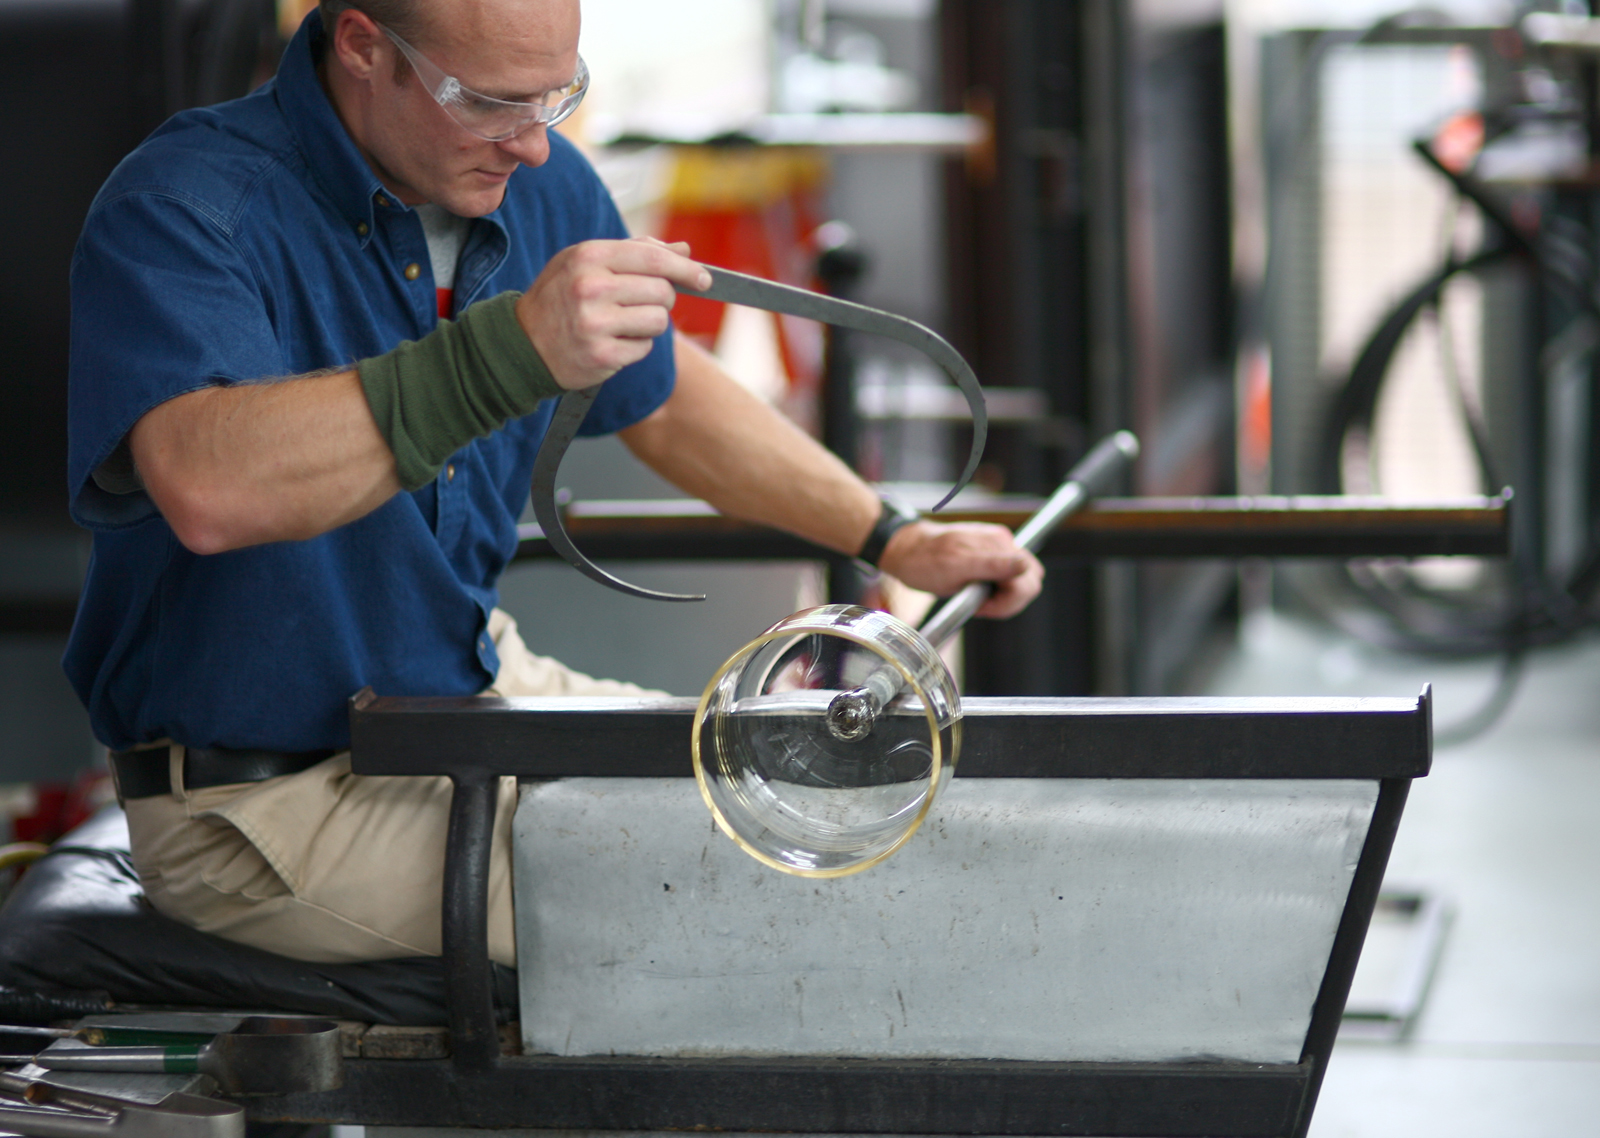 David Strauss participates in a GlassLab design session in Corning, June 2013